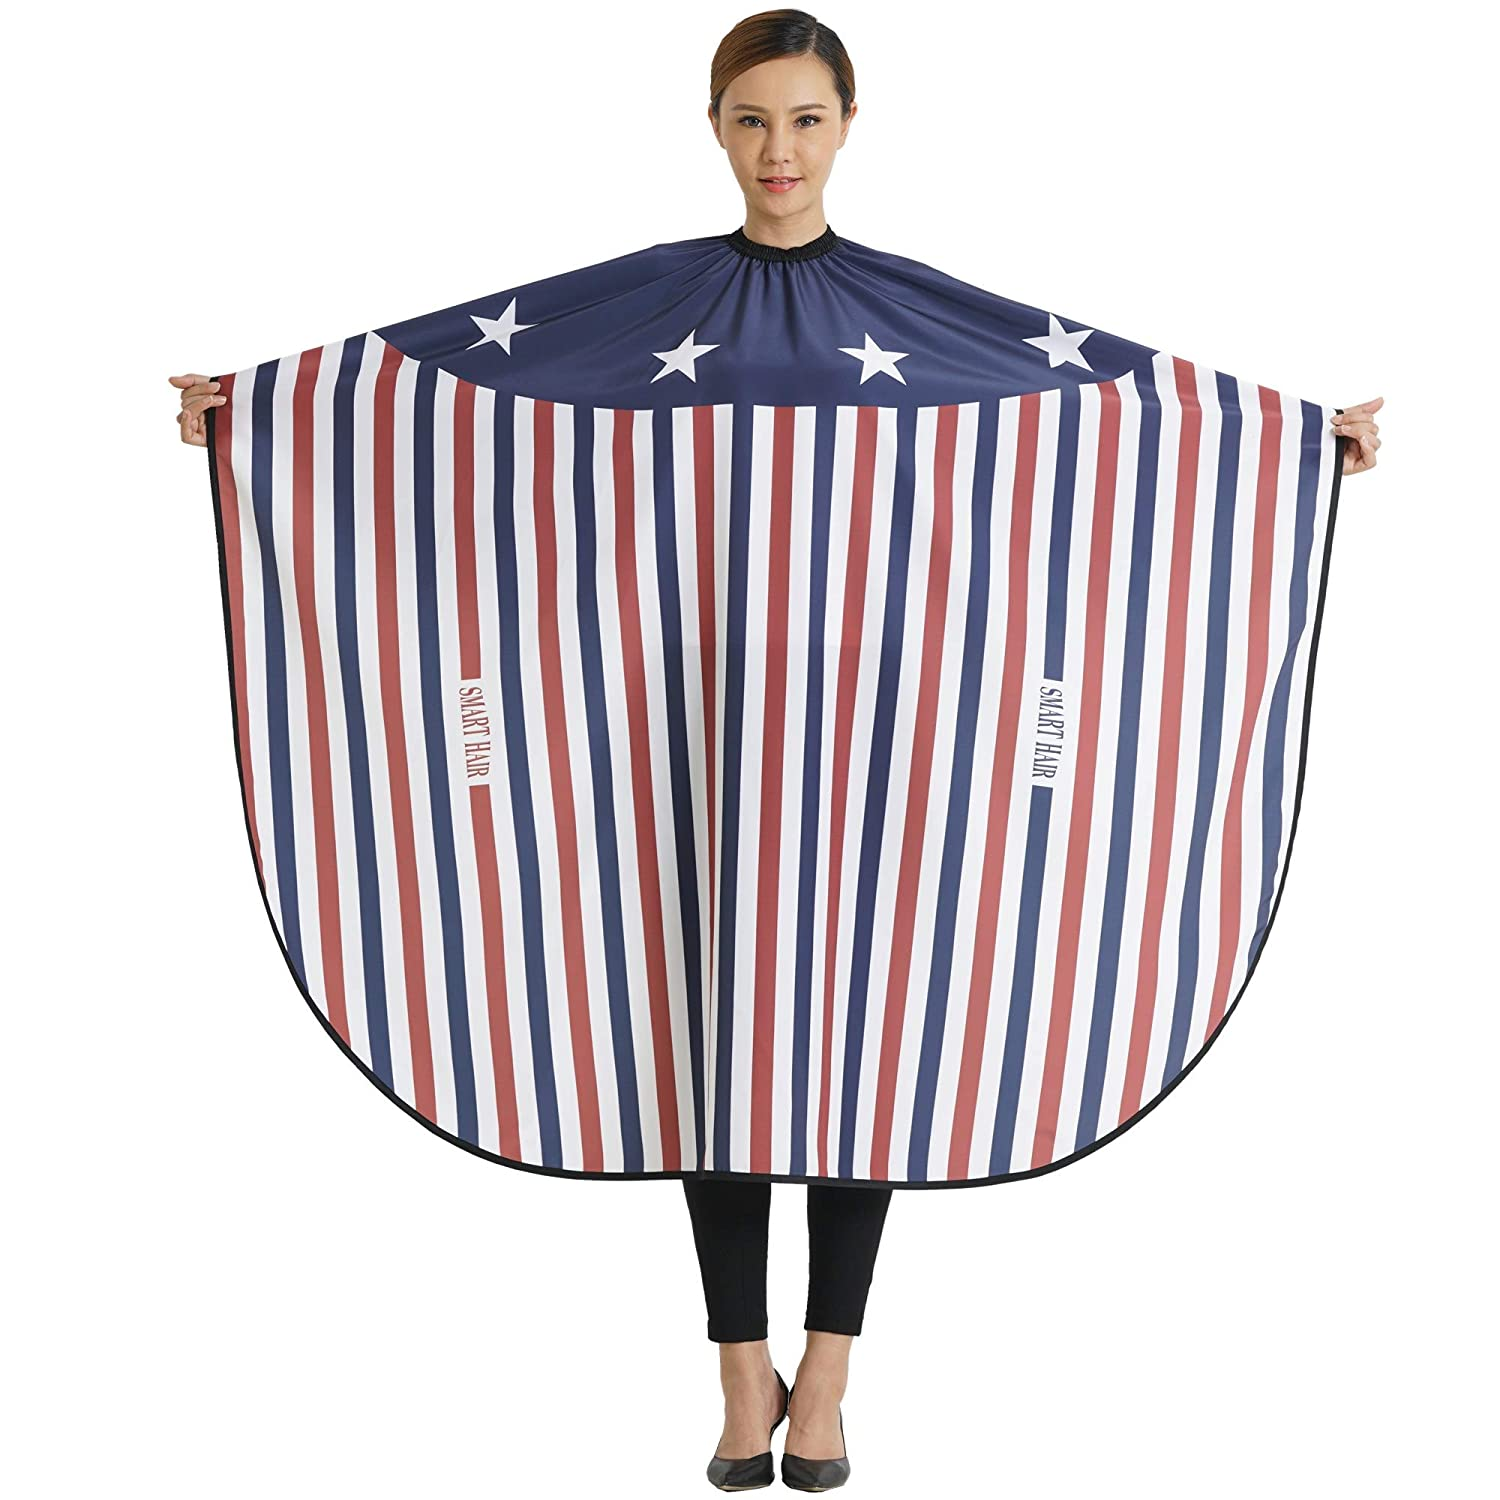 SMARTHAIR Professional Salon Cape Polyester Baber Cape Haircut Apron Hair Cut Cape, 54x62, Red White & Blue, C408001B 54x62 Smart hair